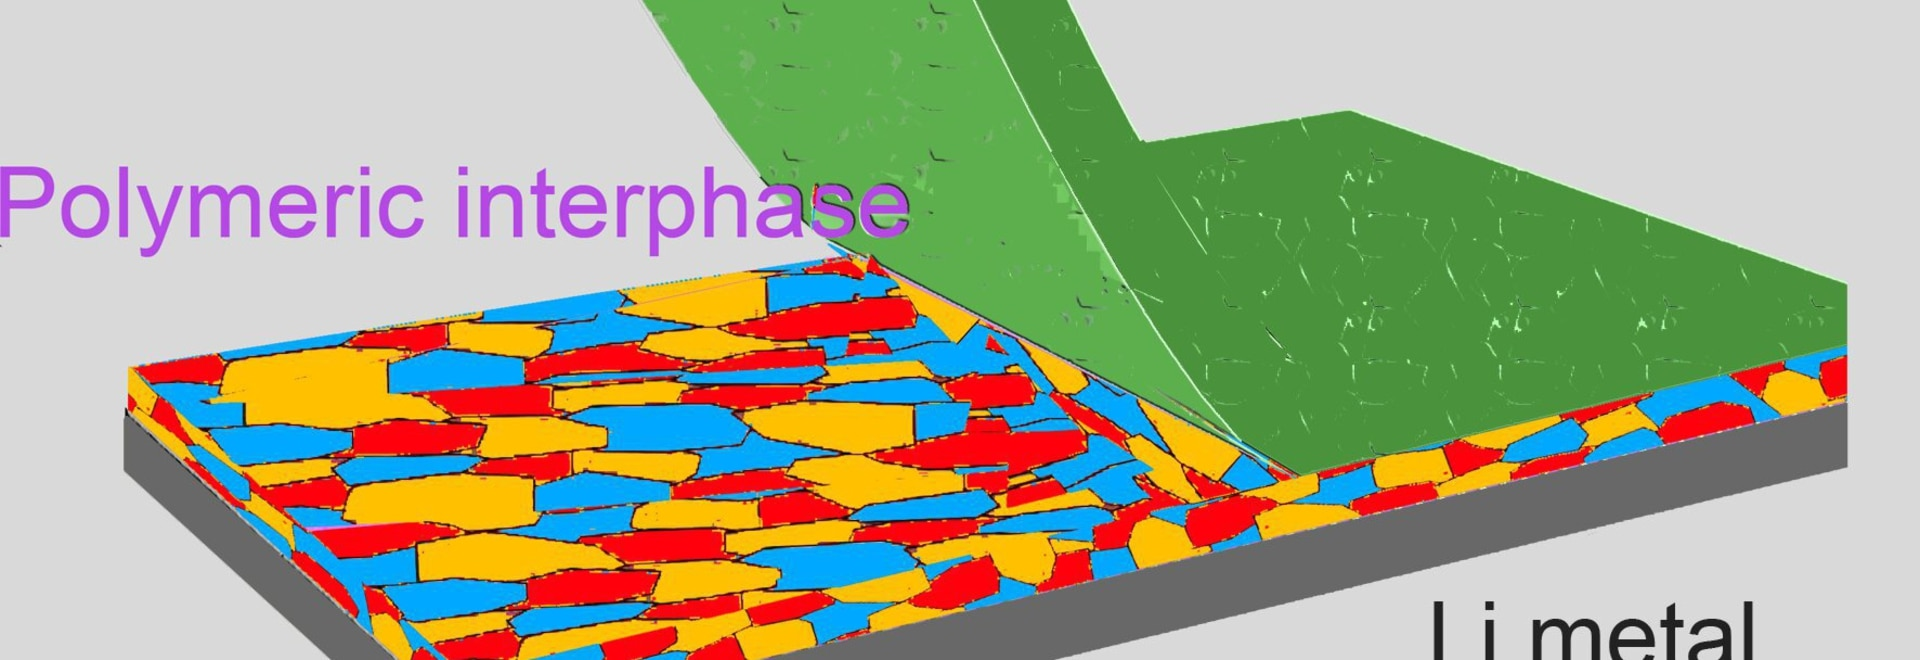 New Interphase Improves Performance, Safety of Lithium Metal Batteries